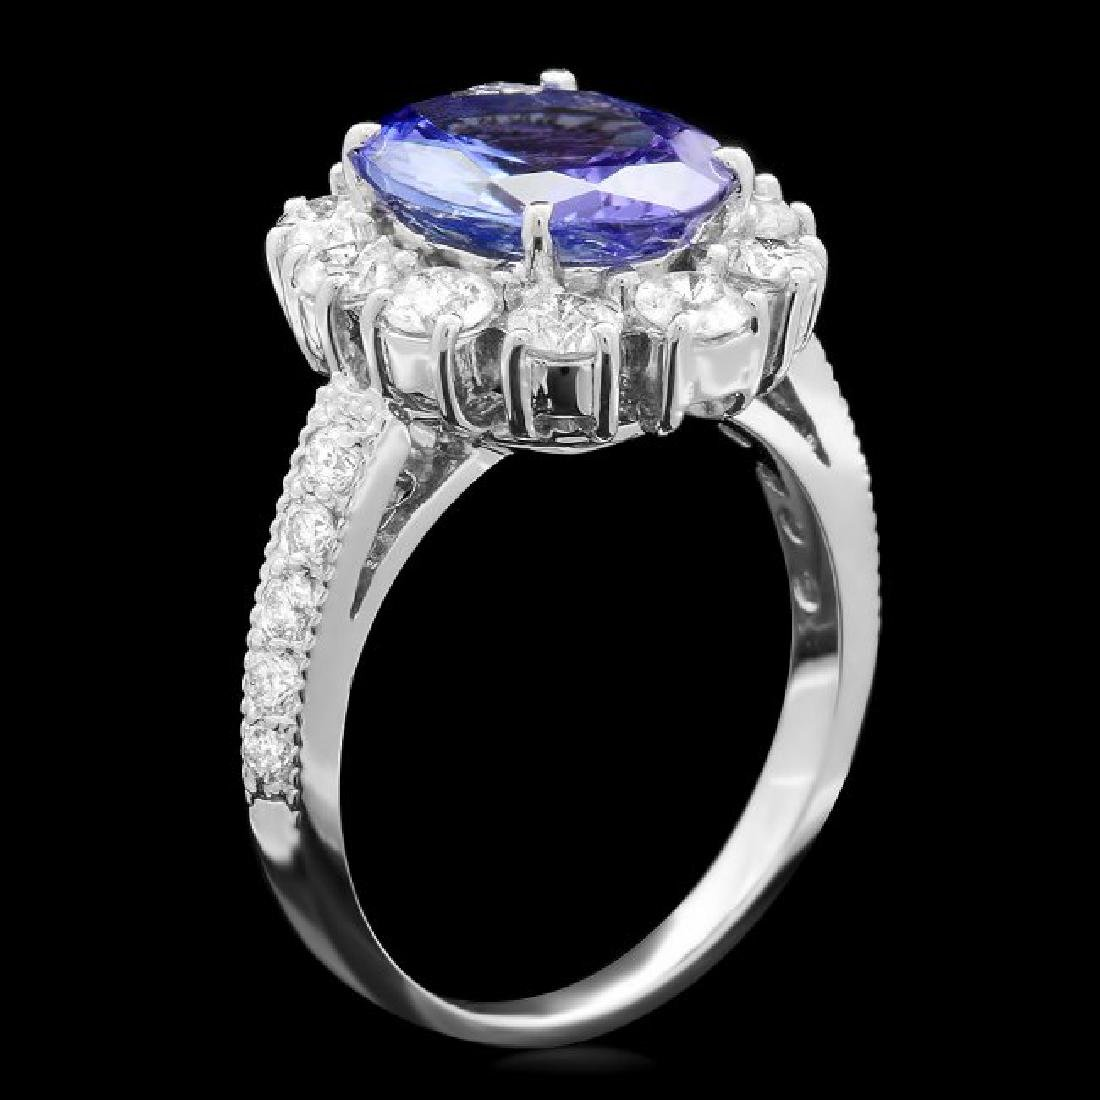 14k Gold 3.00ct Tanzanite 1.40ct Diamond Ring - 2